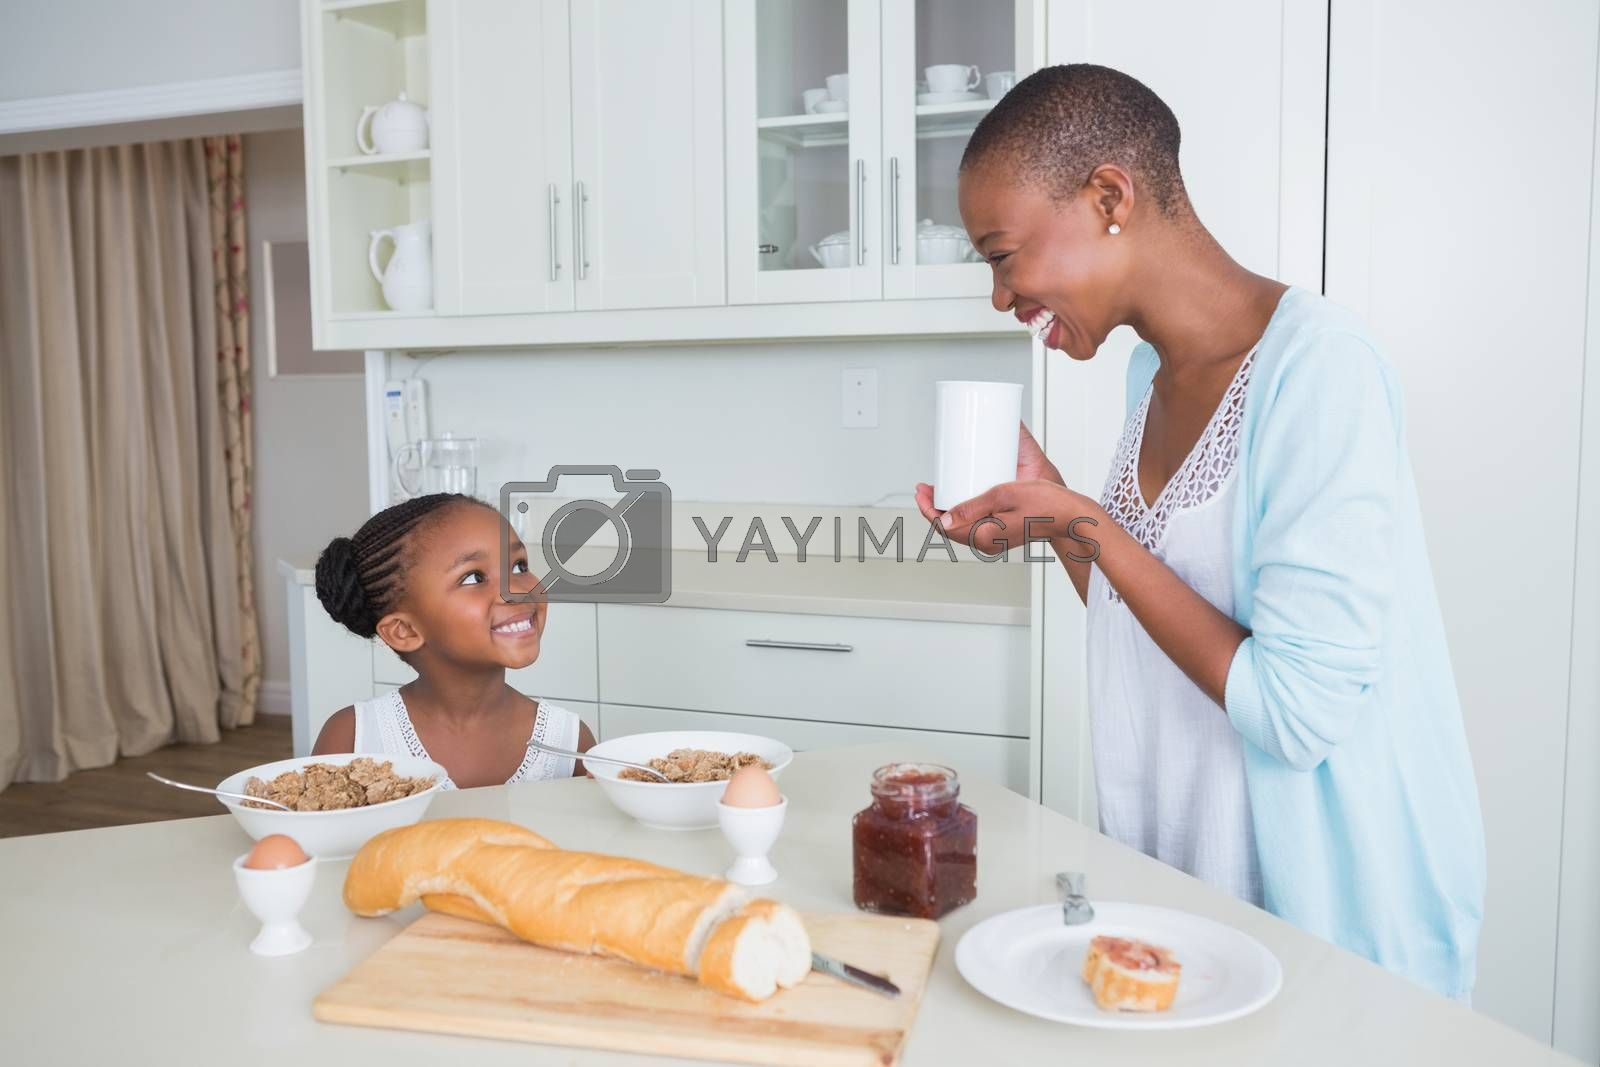 Royalty free image of Smiling mother and daughter eating together  by Wavebreakmedia